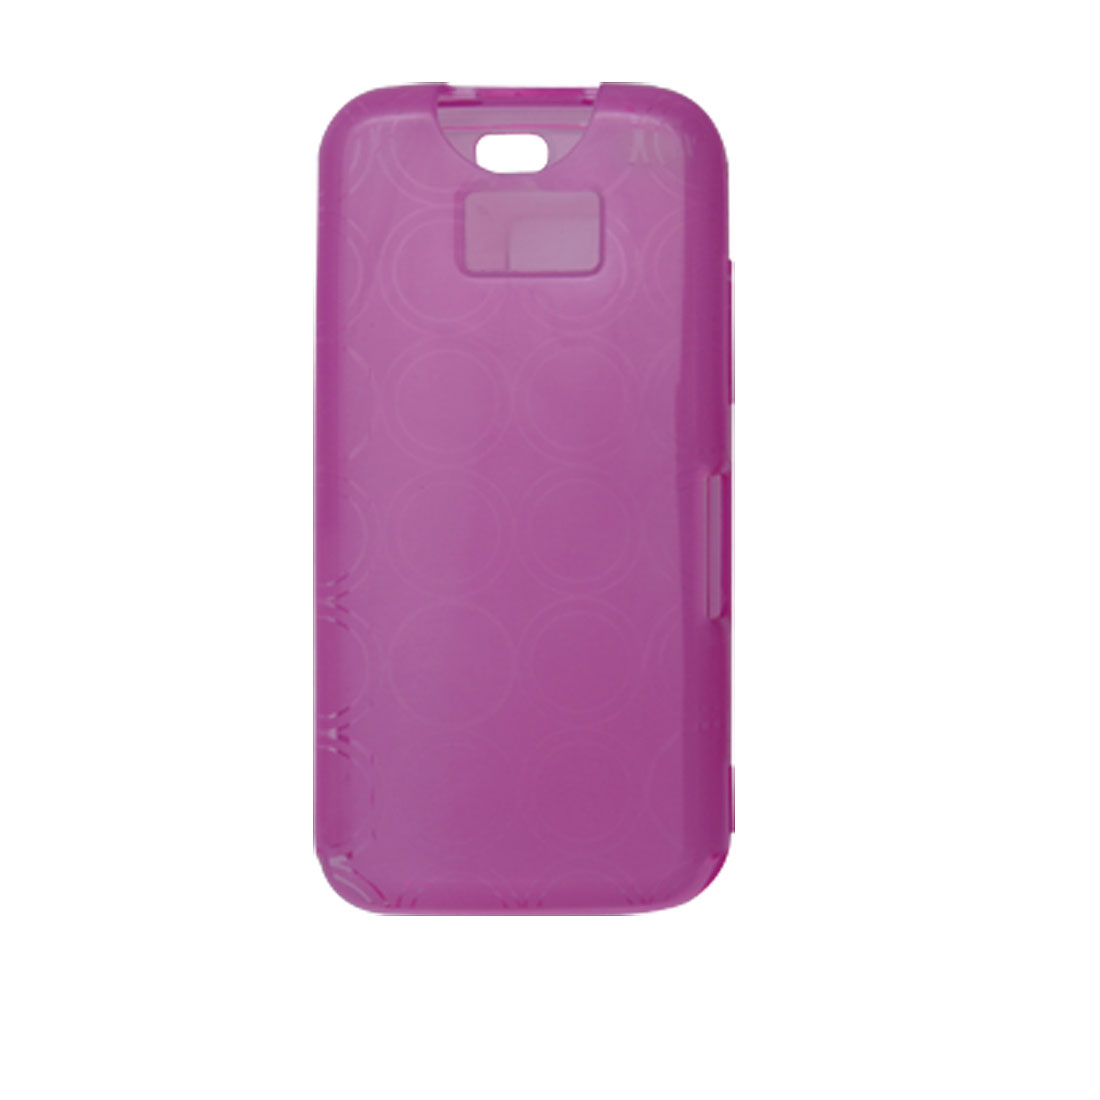 Clear Purple Soft Plastic Case Protector for Nokia 5530